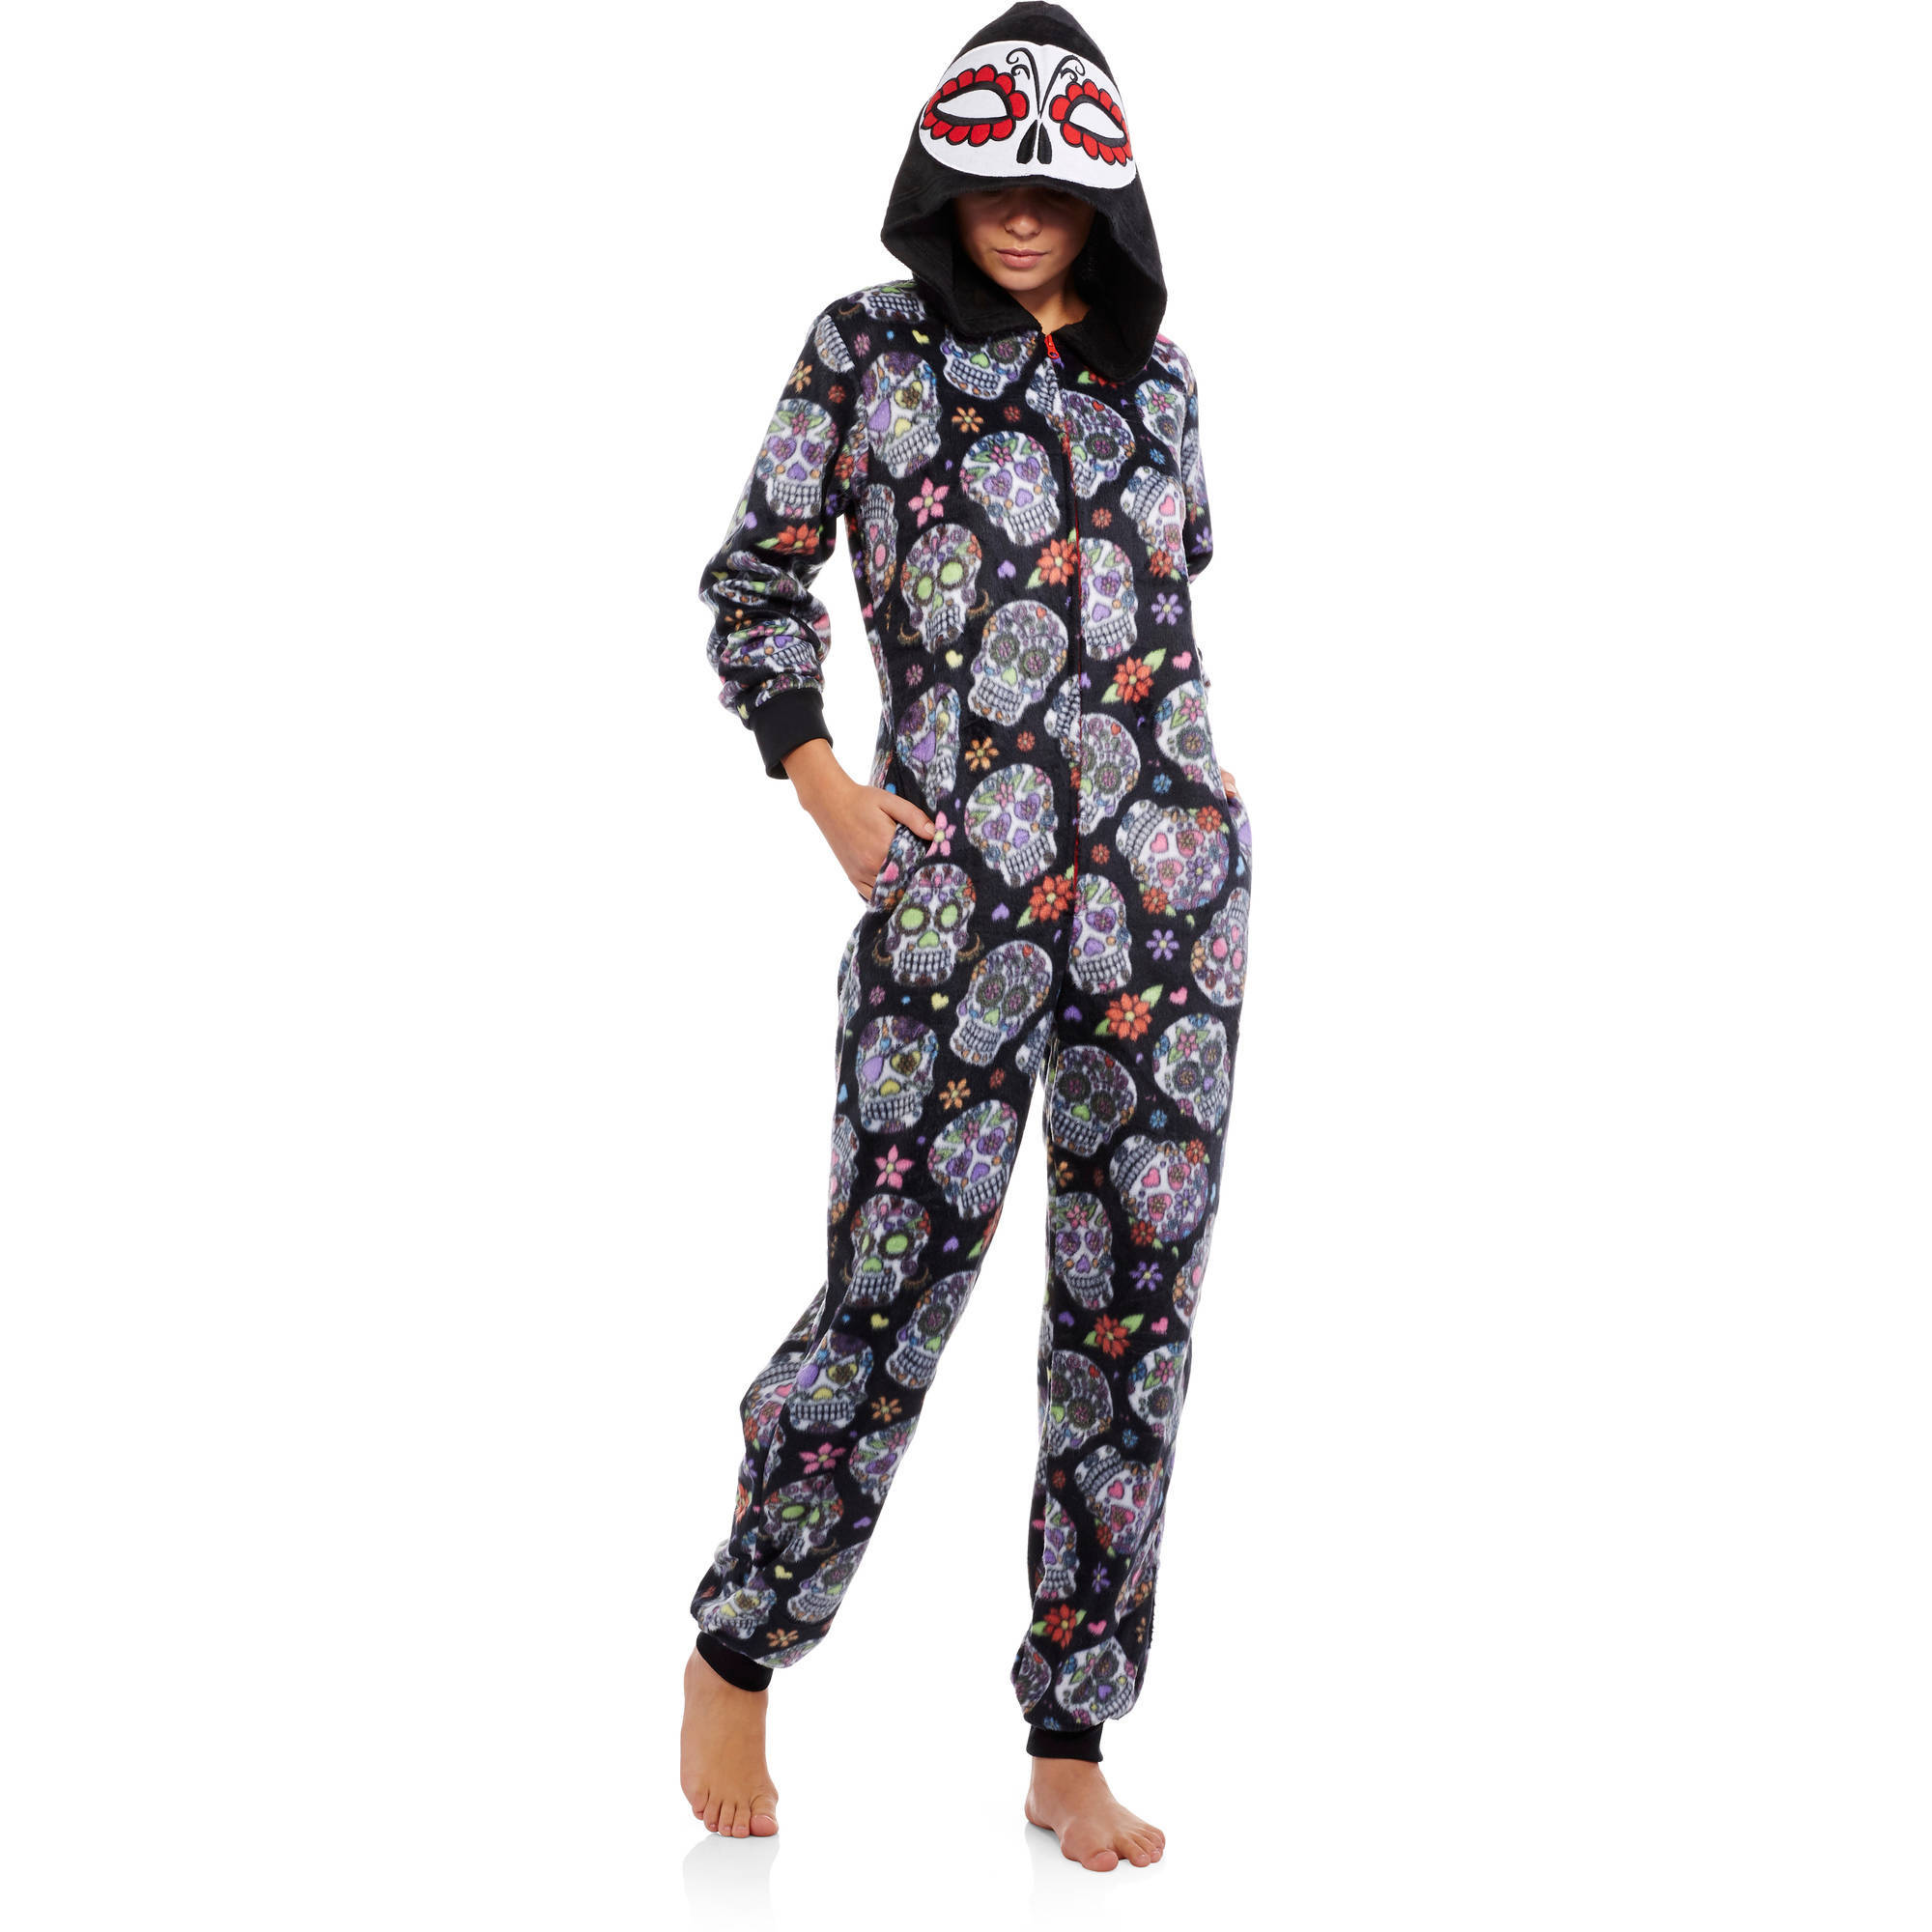 8c7428fe9 Juniors Microfleece Sleepwear Adult Onesie Costume Union Suit Pajama ...